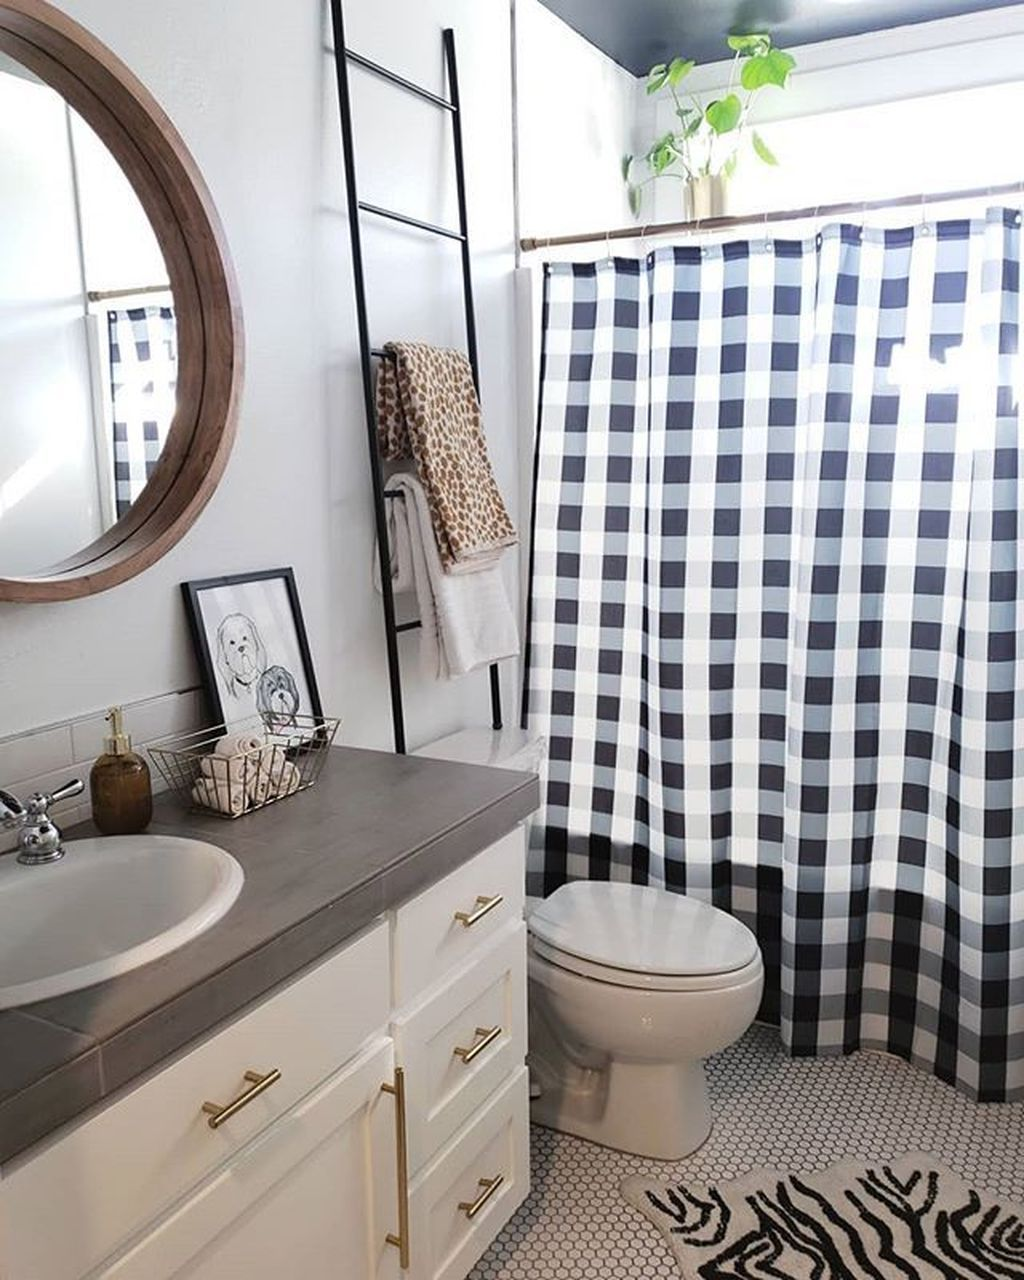 31 Amazing Black And White Shower Curtain For Your Bathroom Decor Homyhomee White Shower Curtain Black And White Shower Curtain Bathroom Decor Shower curtain black and white